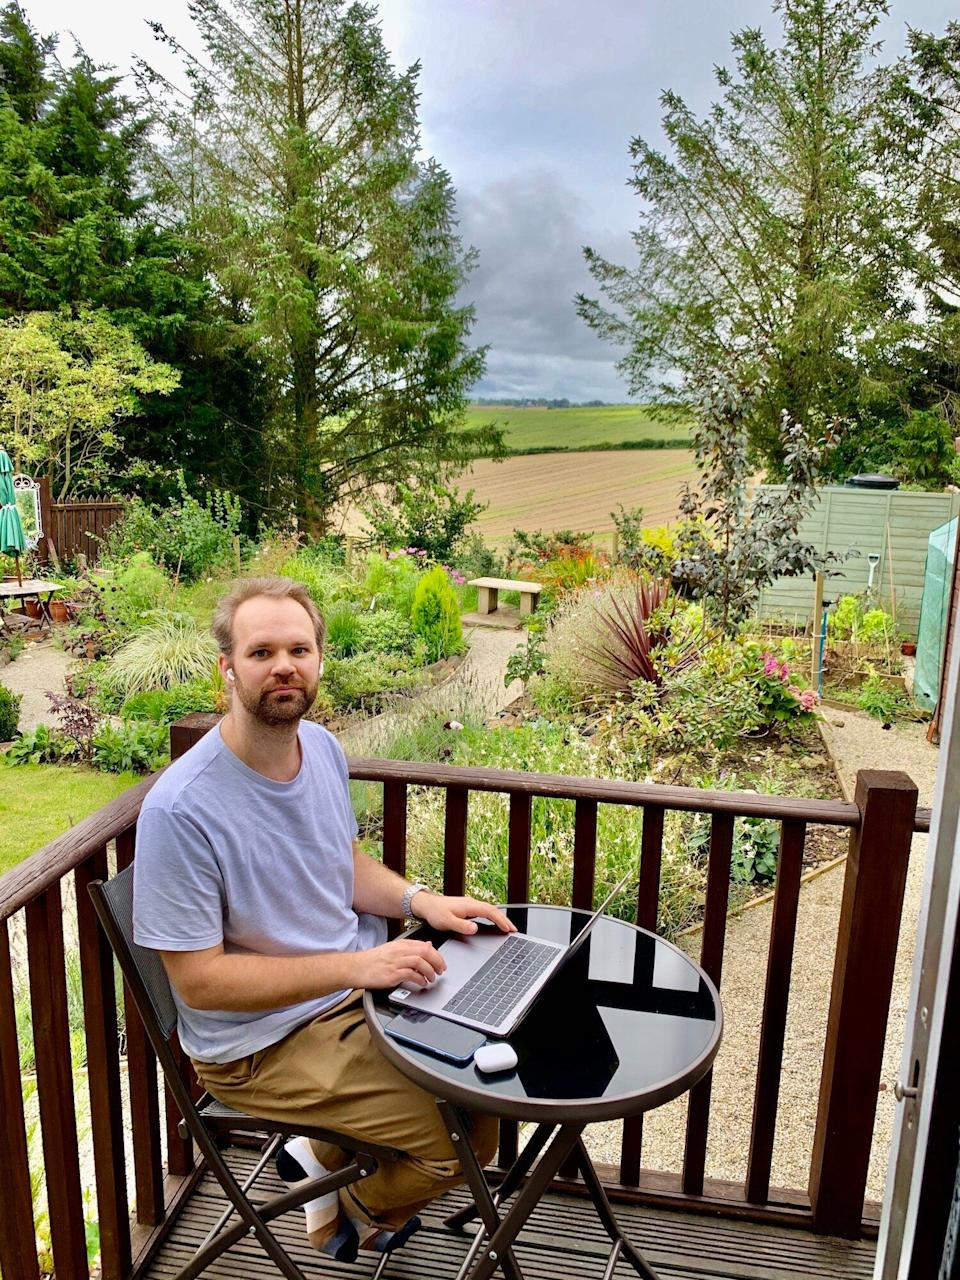 Konrad working from the garden of their Airbnb. (Photo: Christian Azolan)